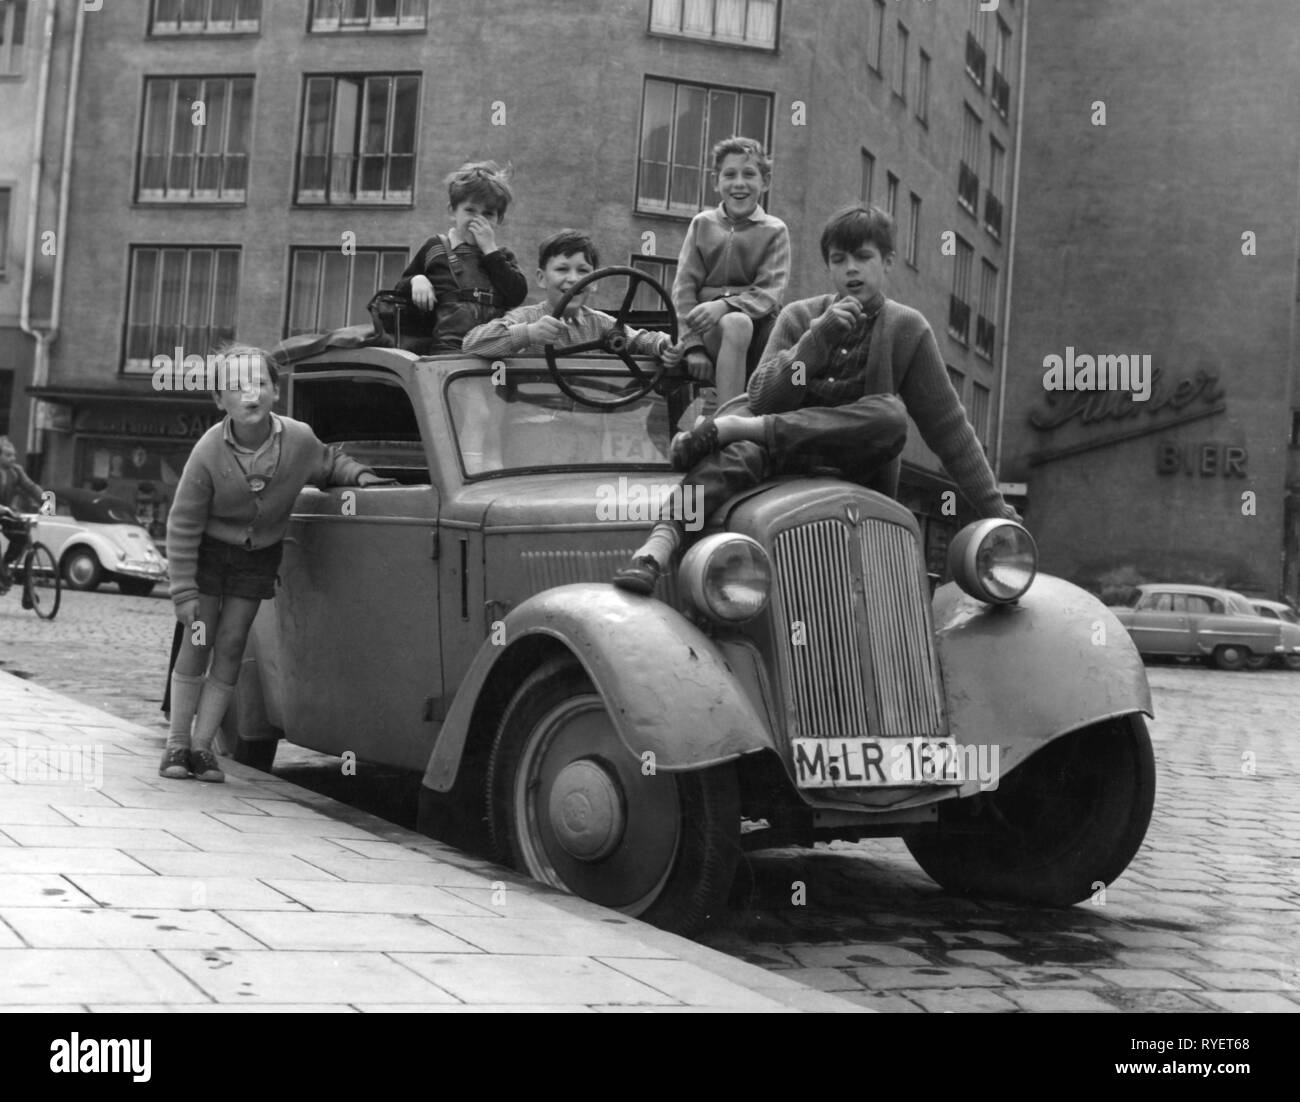 Old 1950s car black and white stock photos images alamy